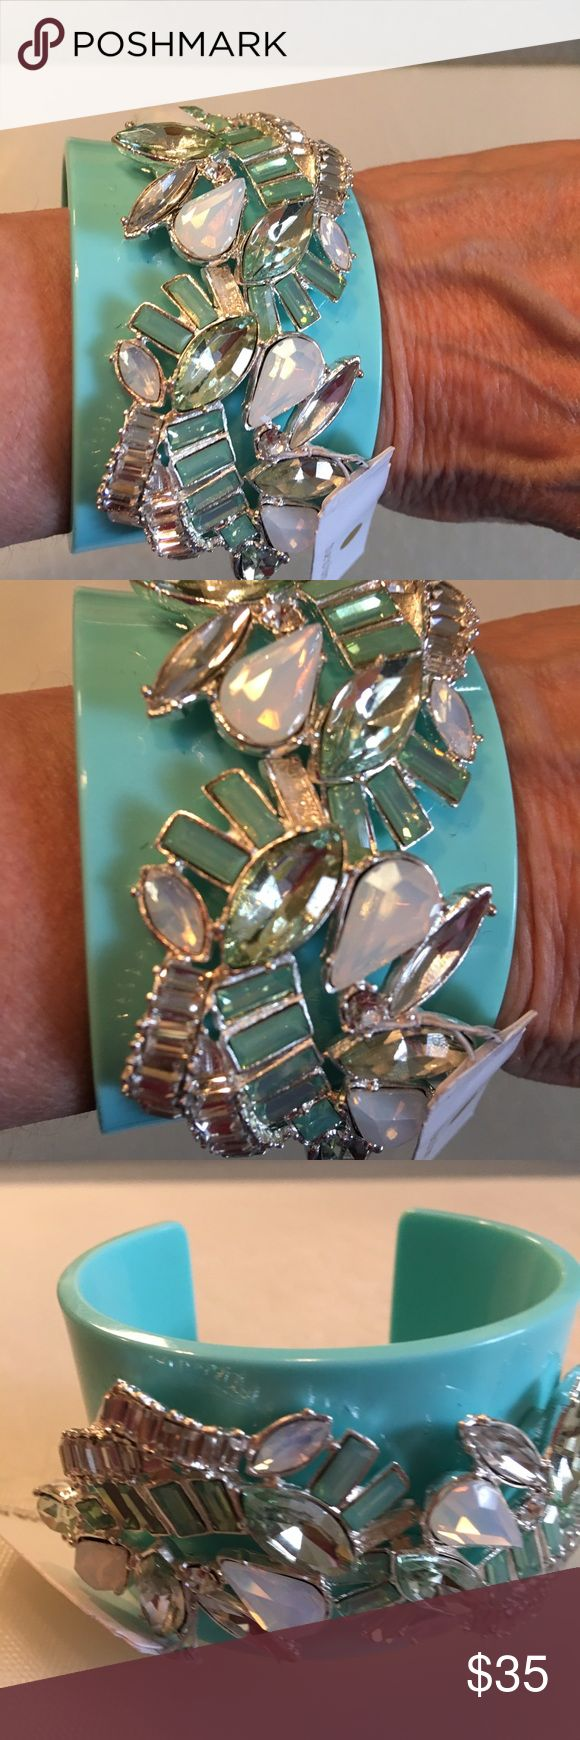 """NWT Gorgeous Statement Cuff This gorgeous Tiffany blue statement cuff is embellished with large crystals of different sizes and shapes: pear, baguette, marquis, etc. Cuff itself is approx 1.75"""" wide and is made of ceramic or very hard plastic. It is very substantial. This bracelet will get you noticed and can become your signature cuff. Jewelry Bracelets"""